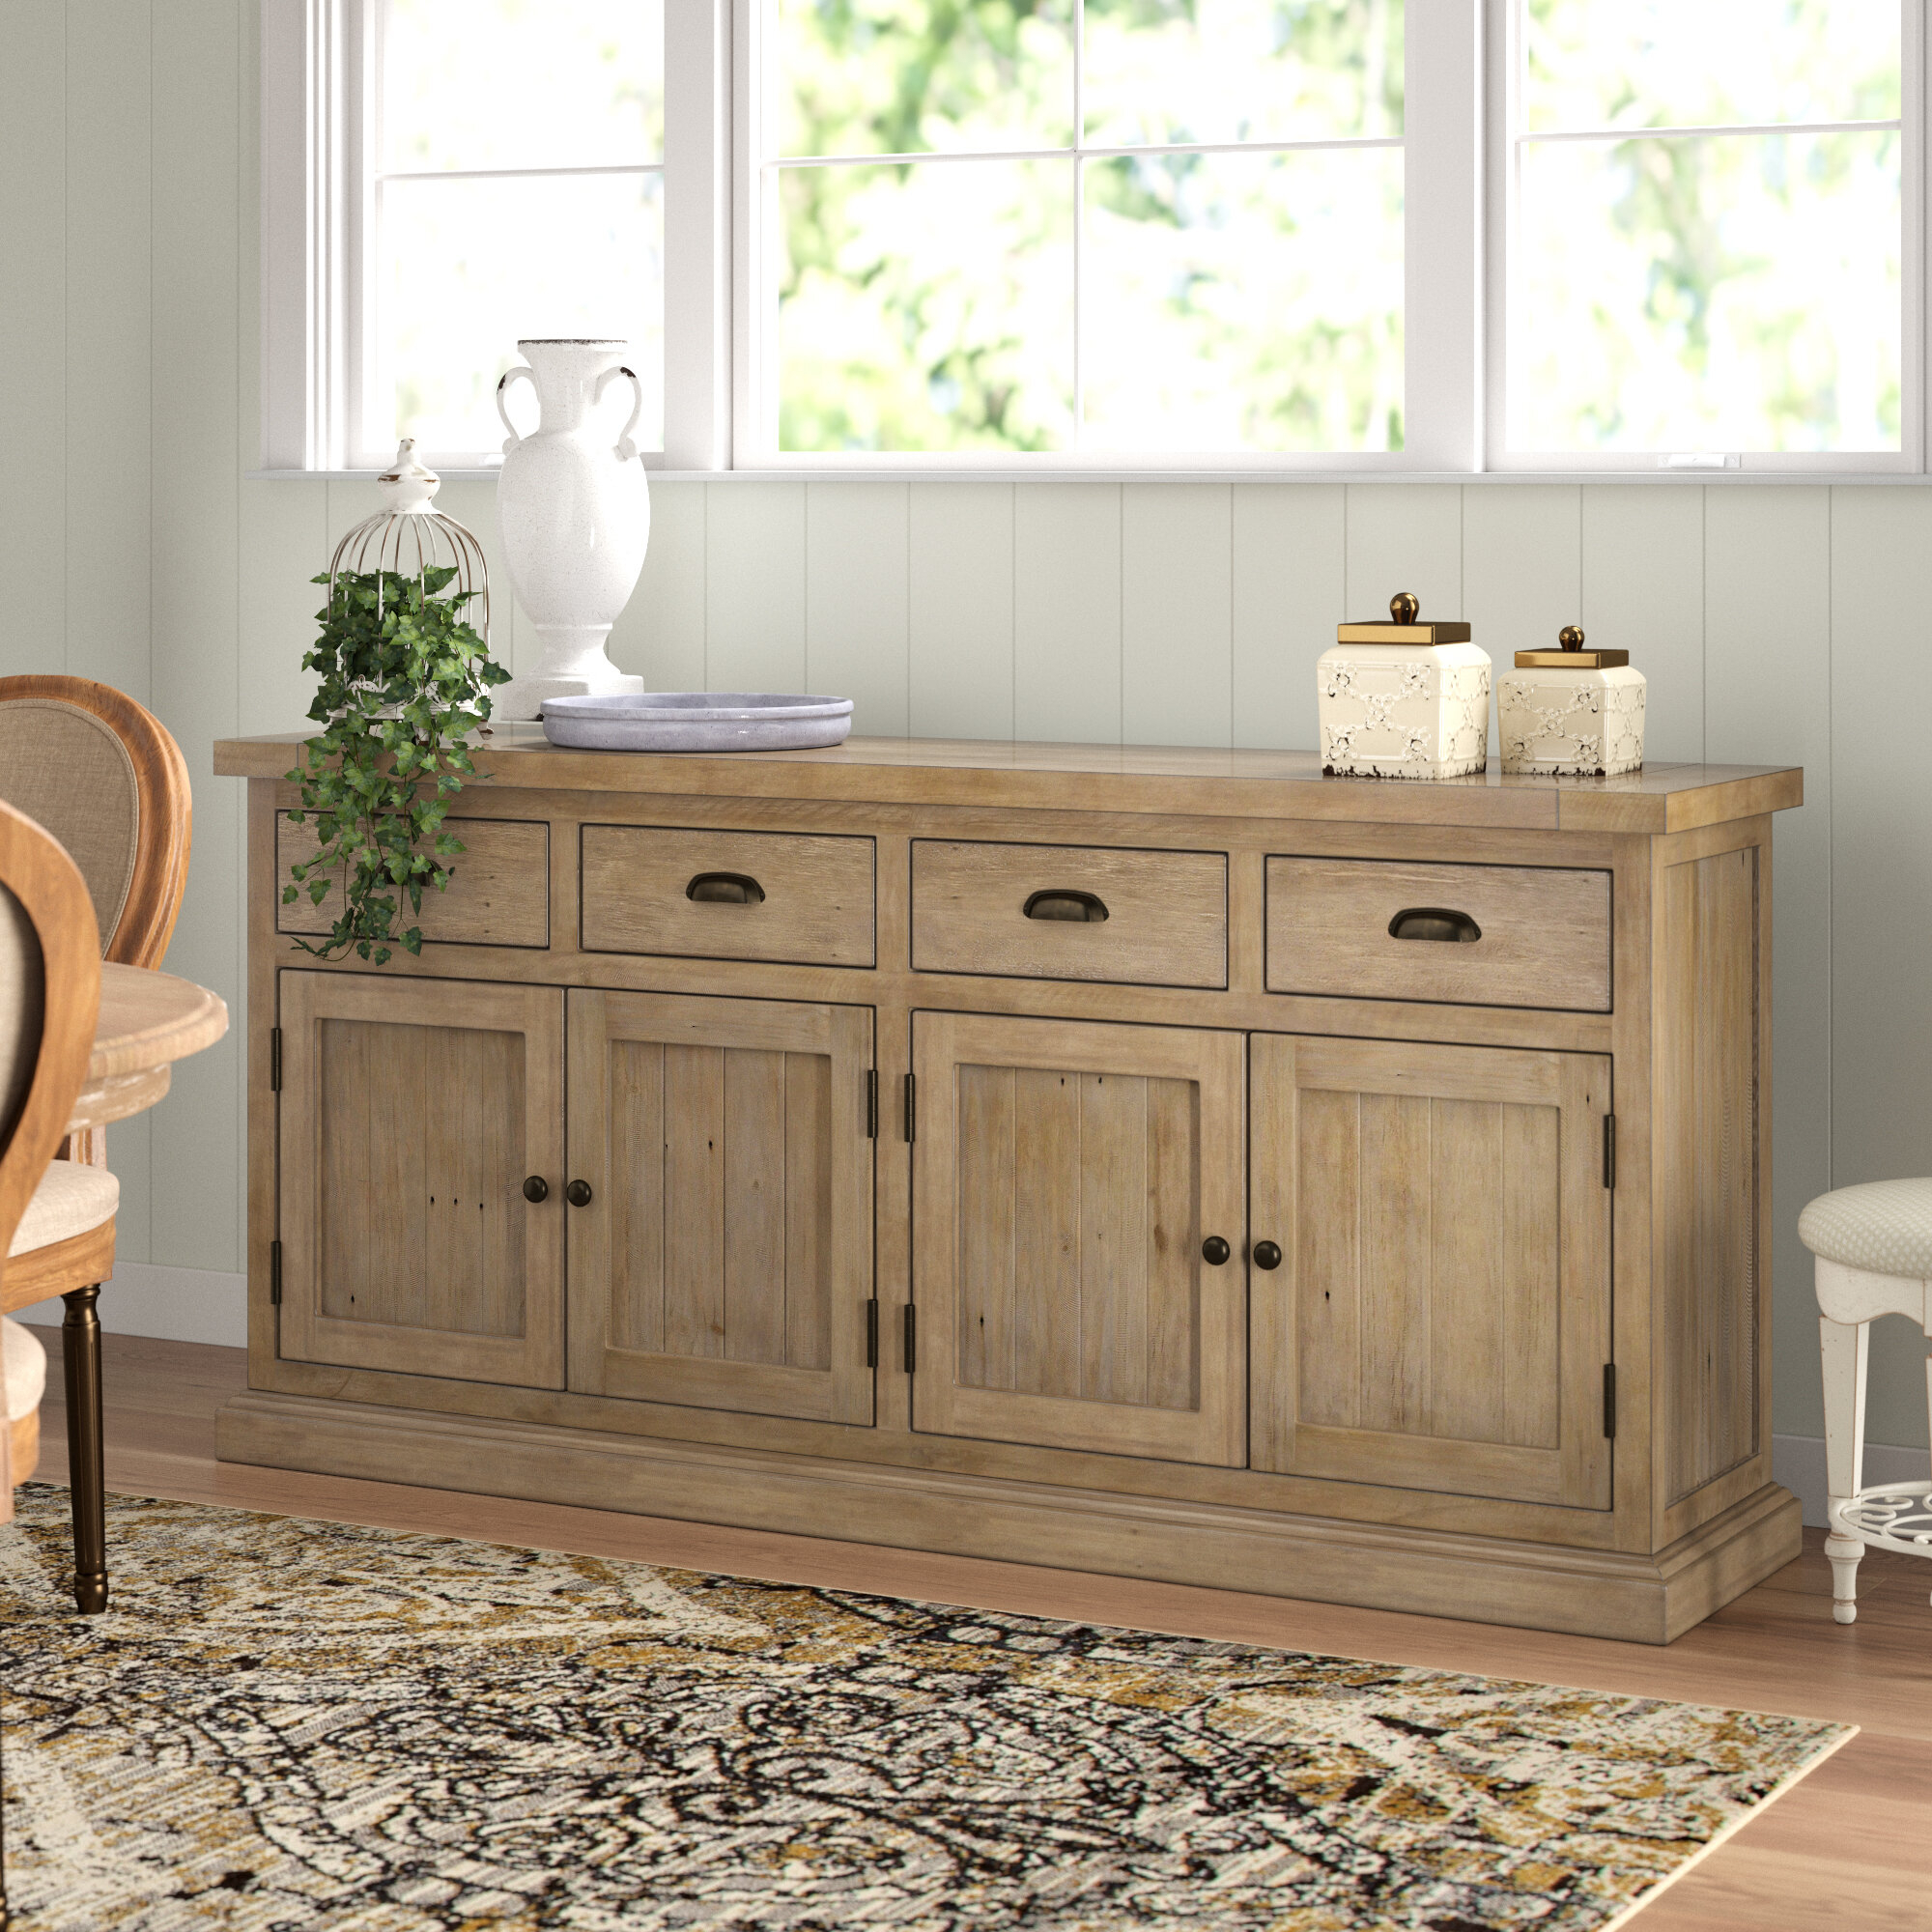 Drawer Equipped Sideboards & Buffets You'll Love In 2019 Within Joyner Sideboards (Image 12 of 30)